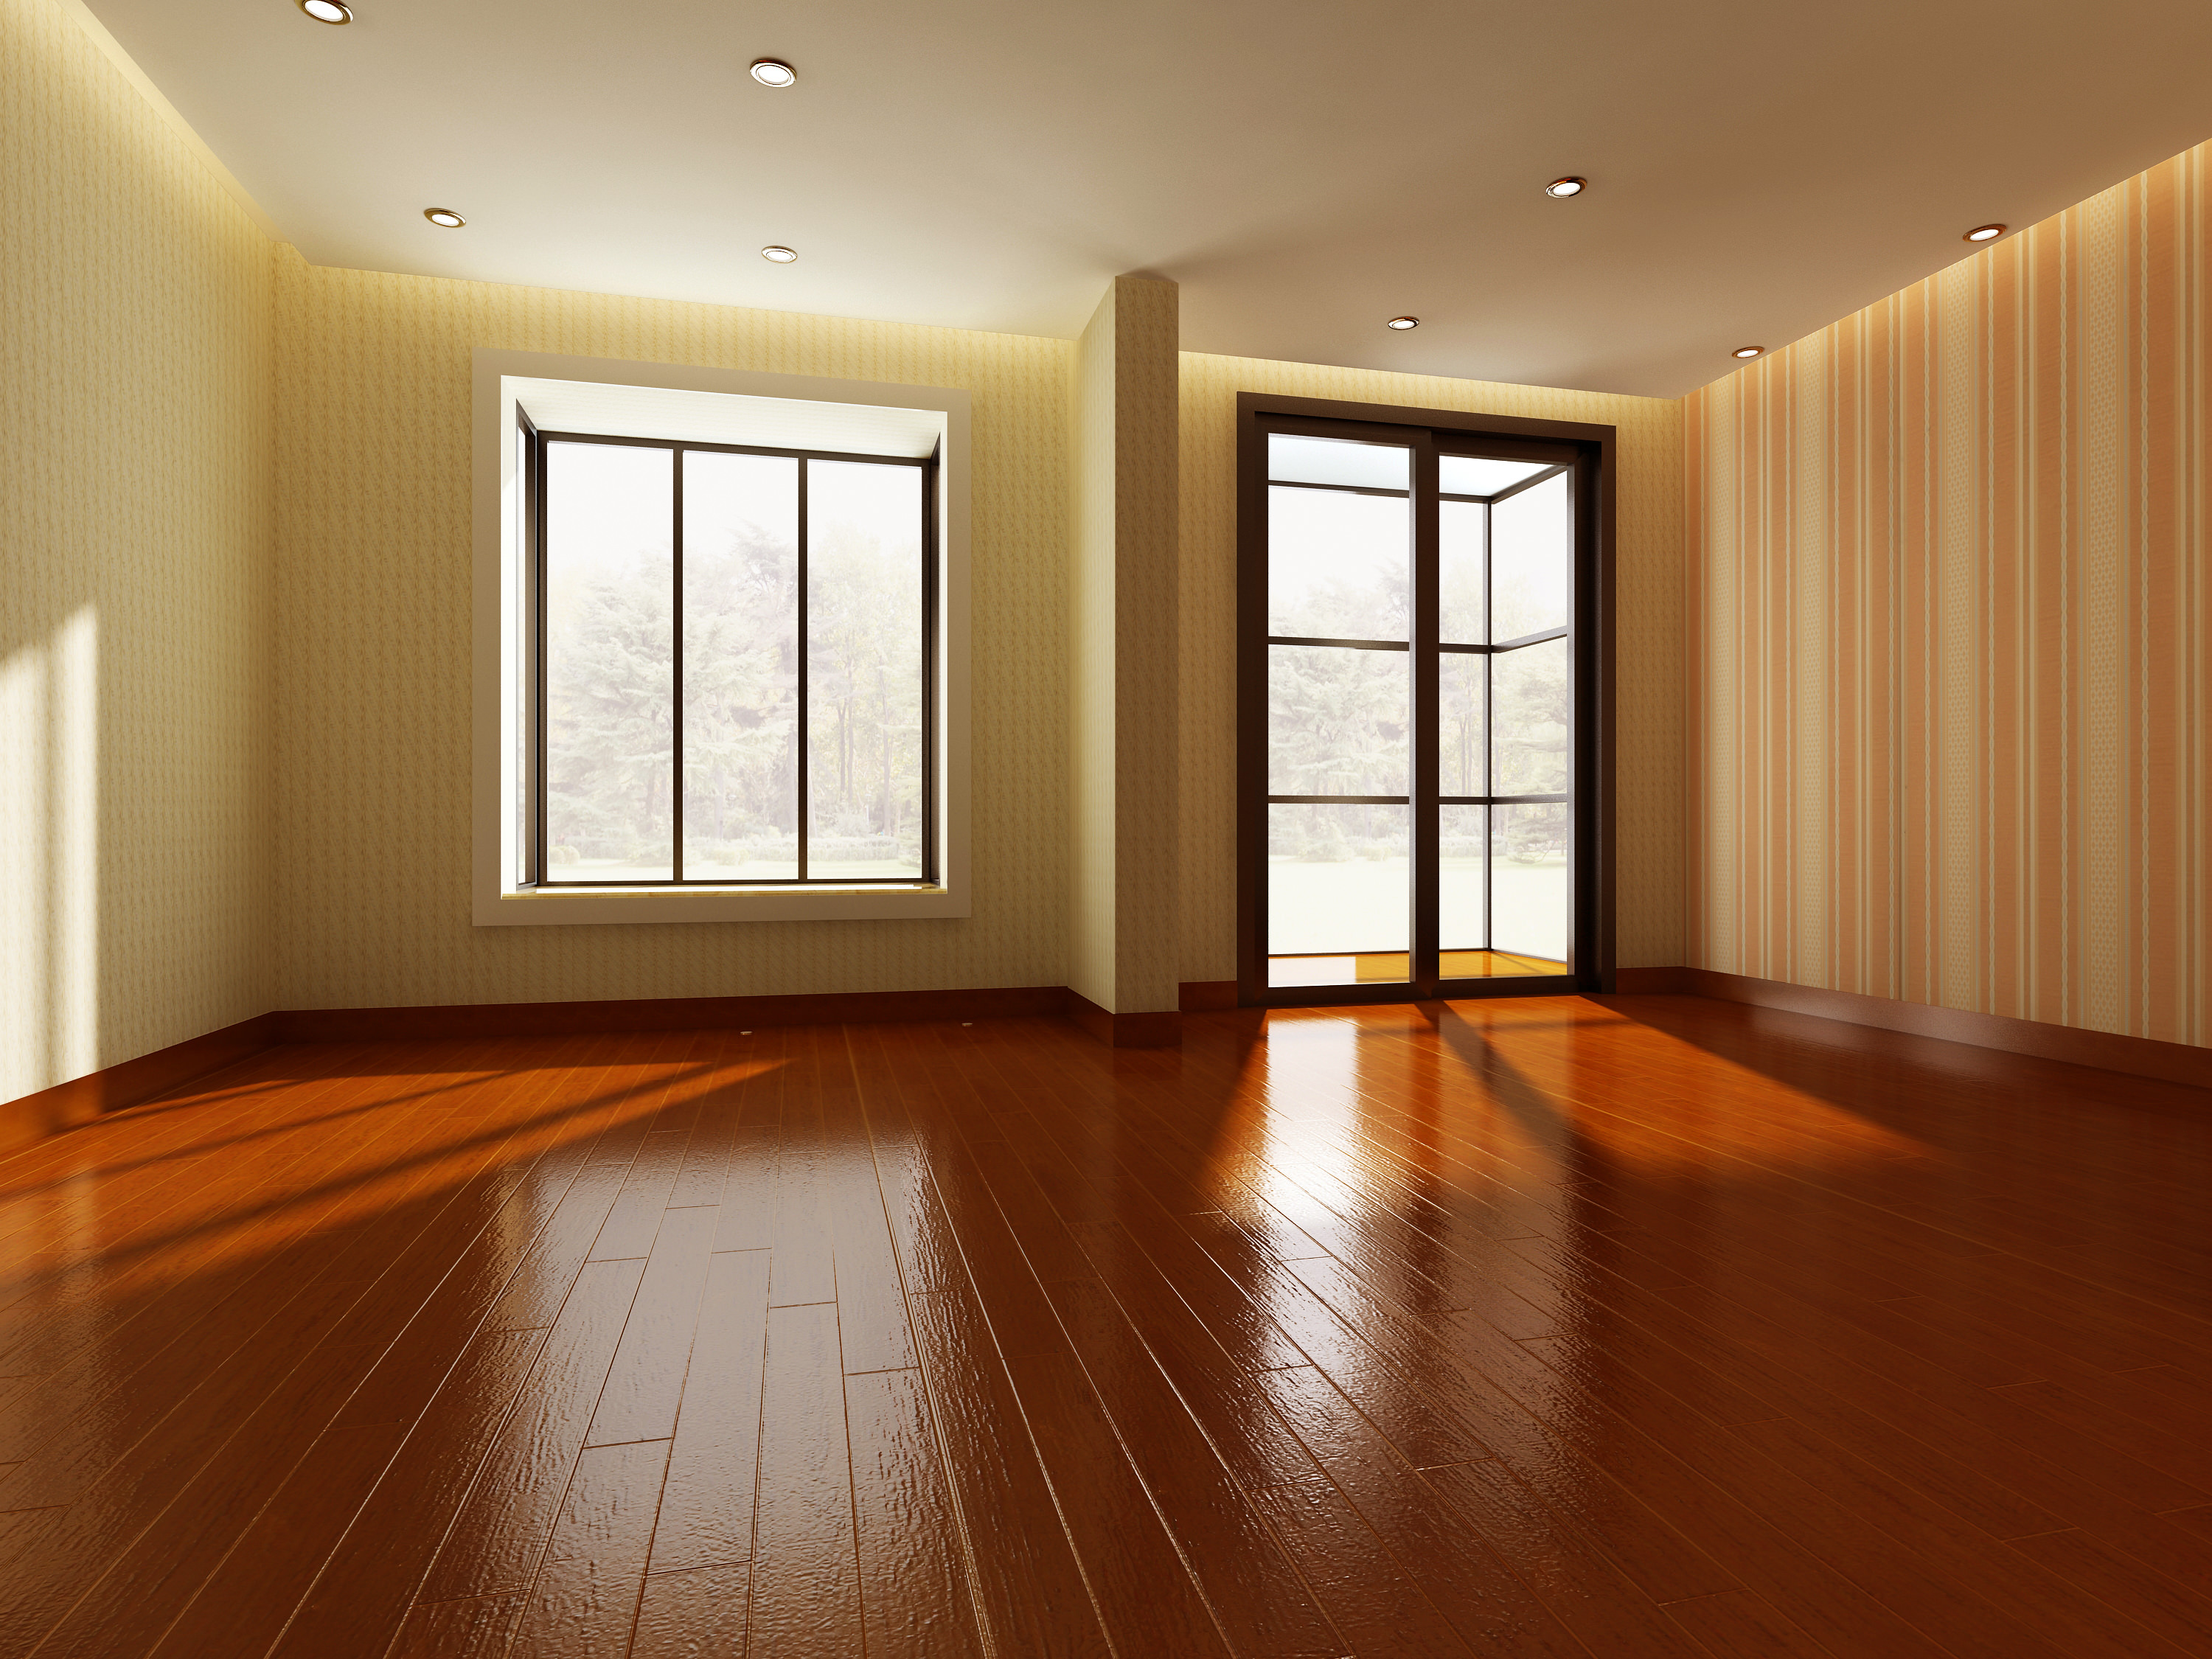 Empty room 3d model max 3d room design online